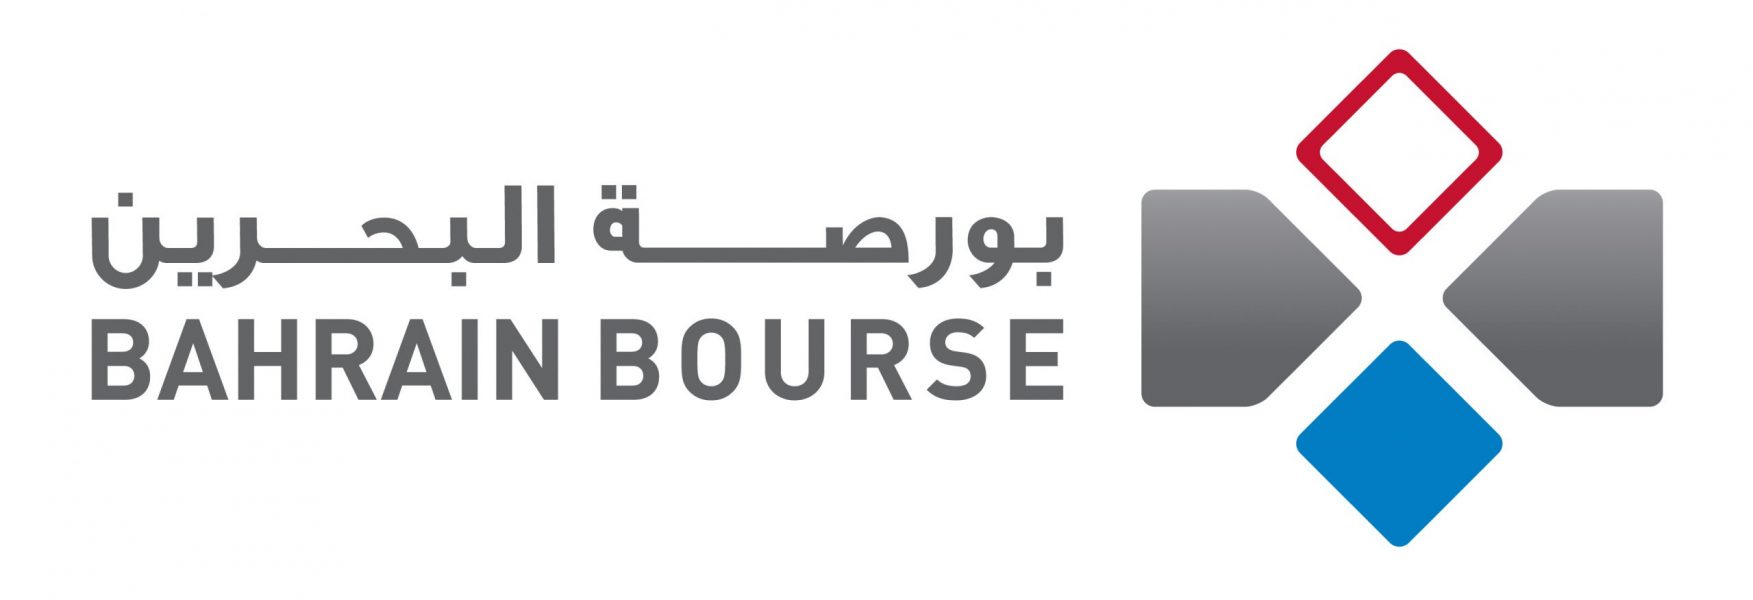 Bahrain-Bourse-'All-Share-Index'-Closes-at-9-Year